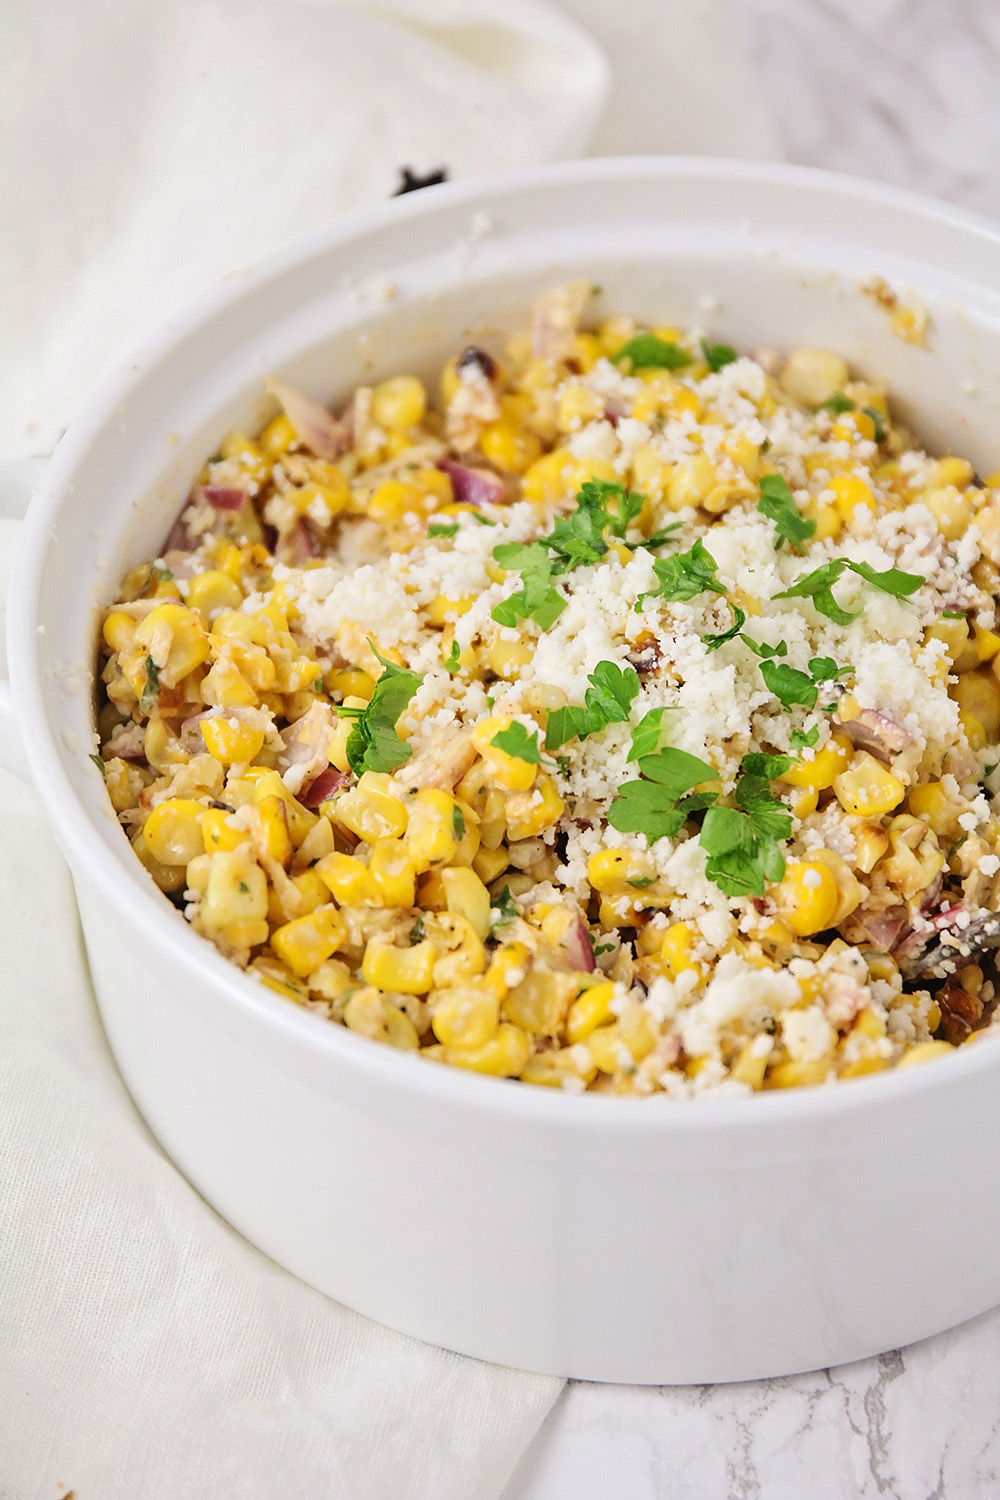 This Mexican street corn salad has the most delicious combination of flavors! It's the perfect accompaniment to taco night!